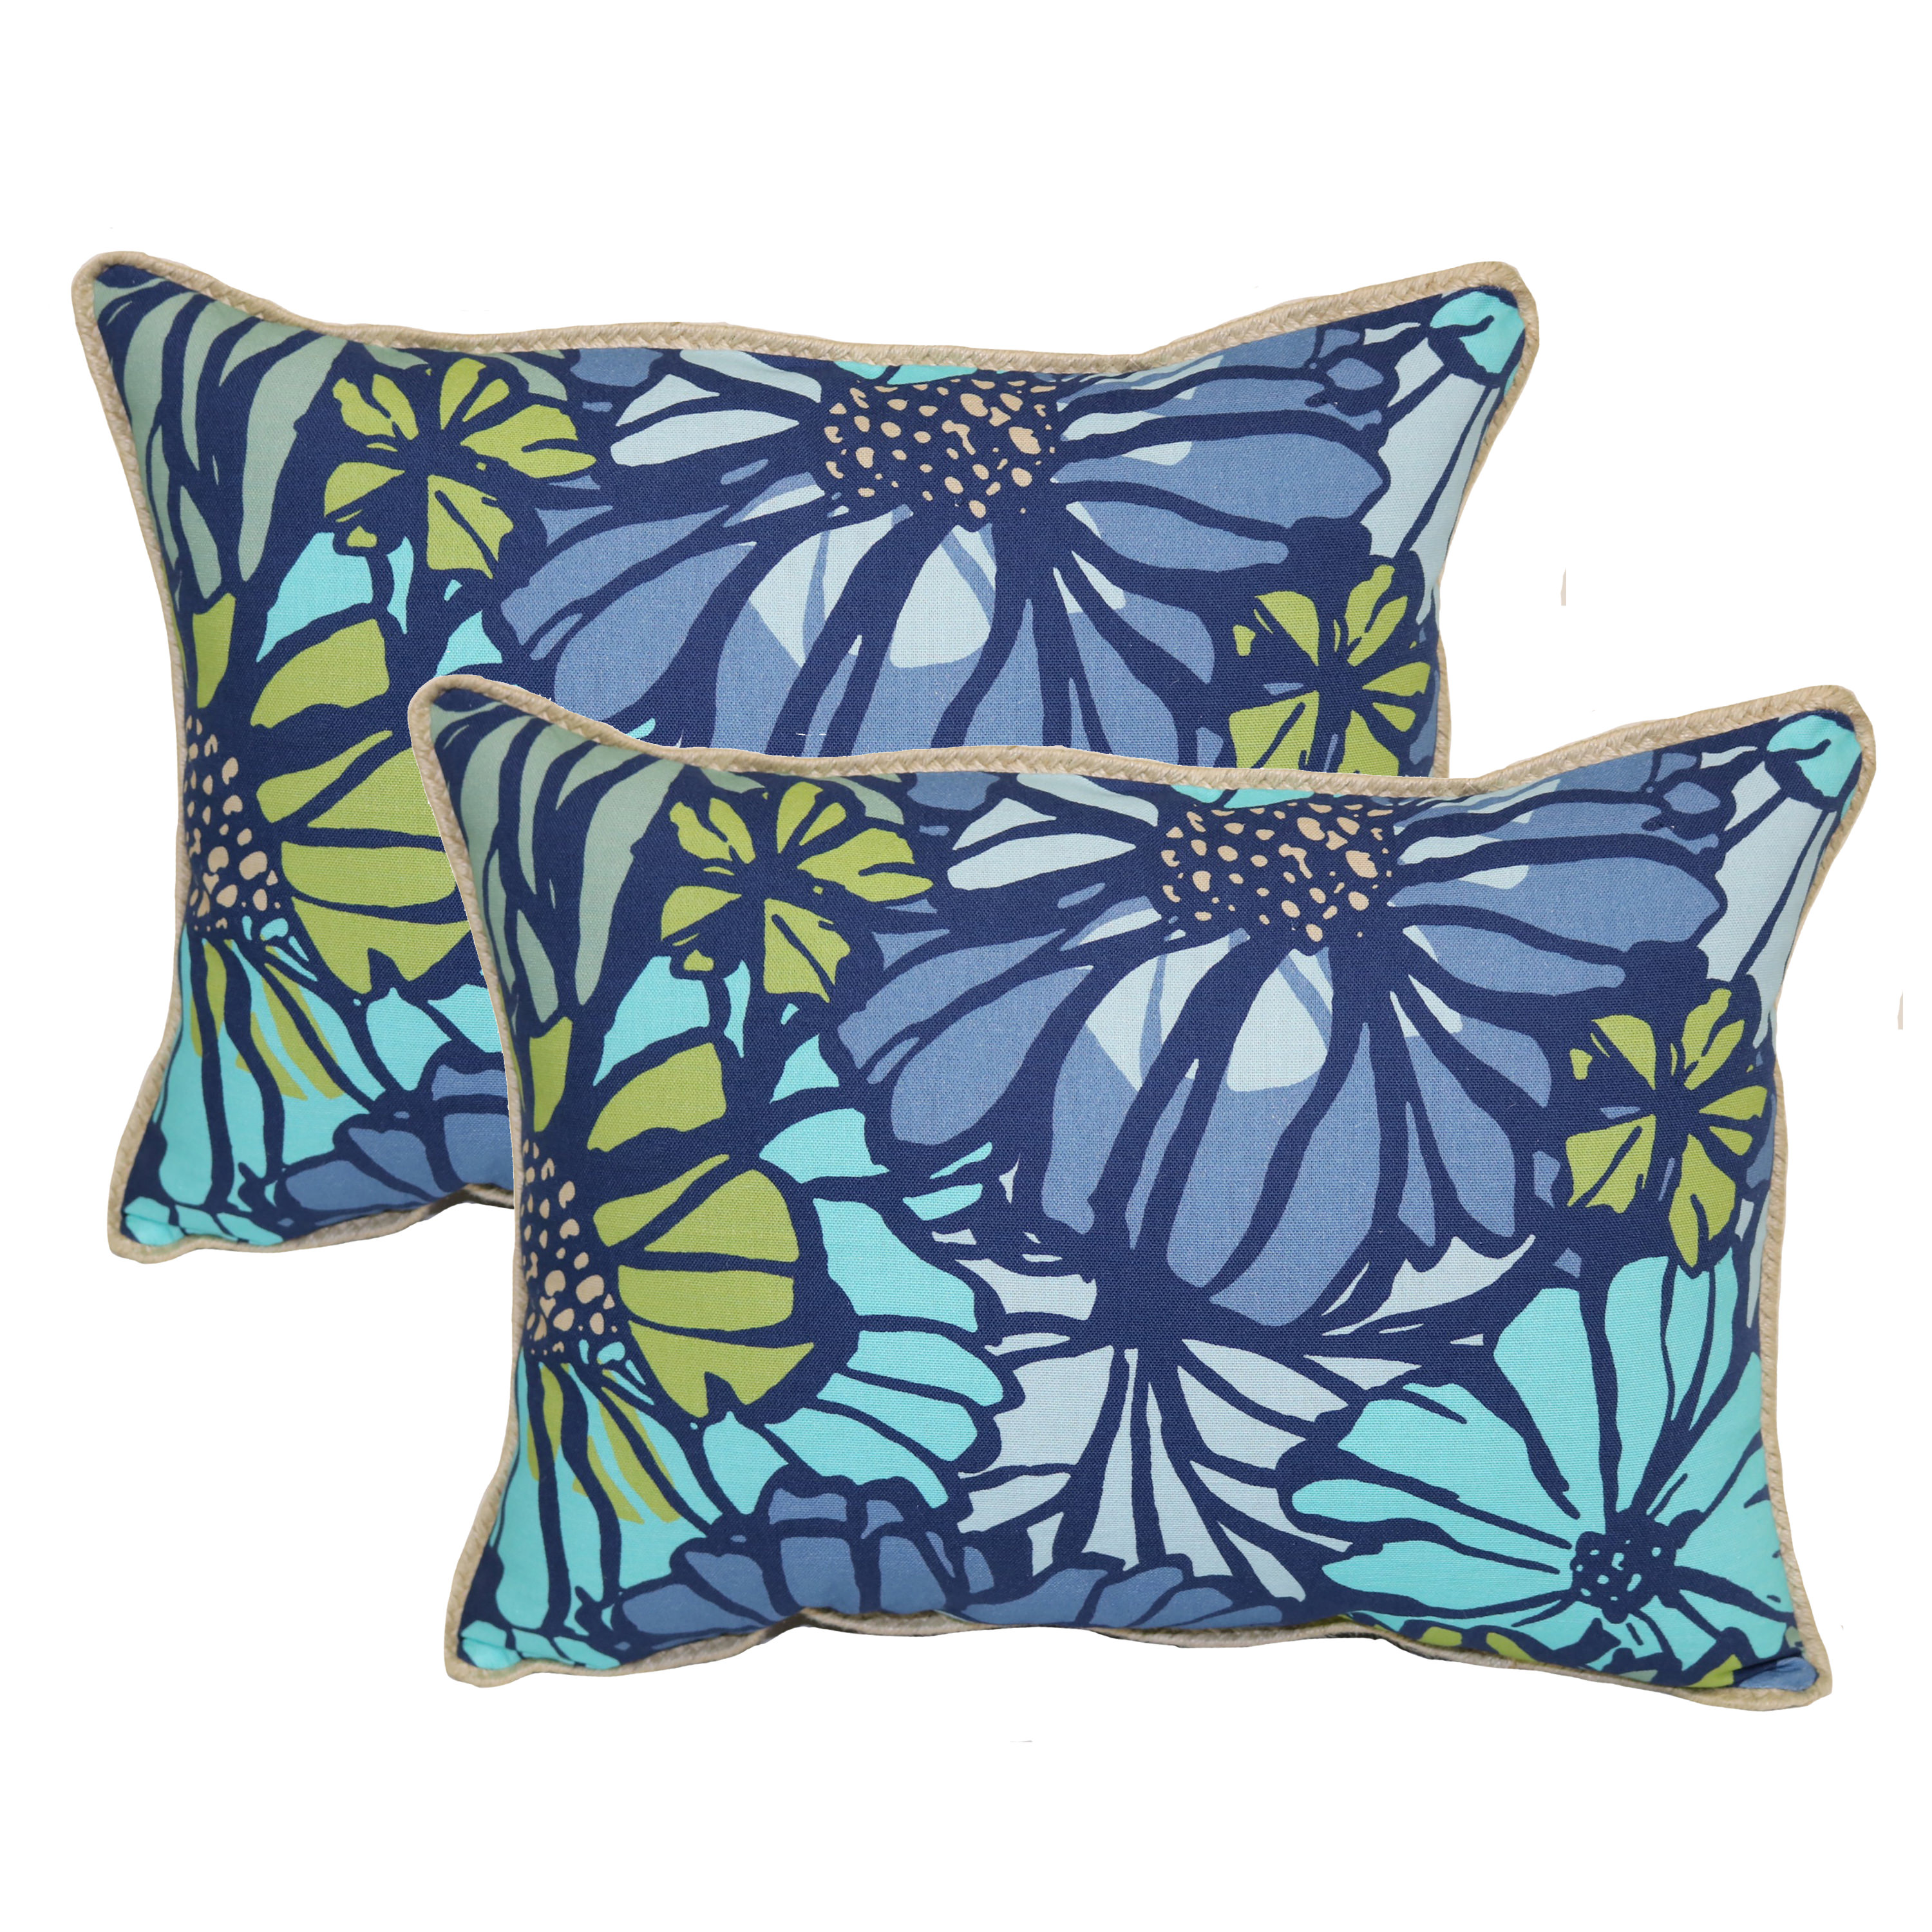 Better Homes and Gardens Sausalito Floral Toss Pillow - Set of 2